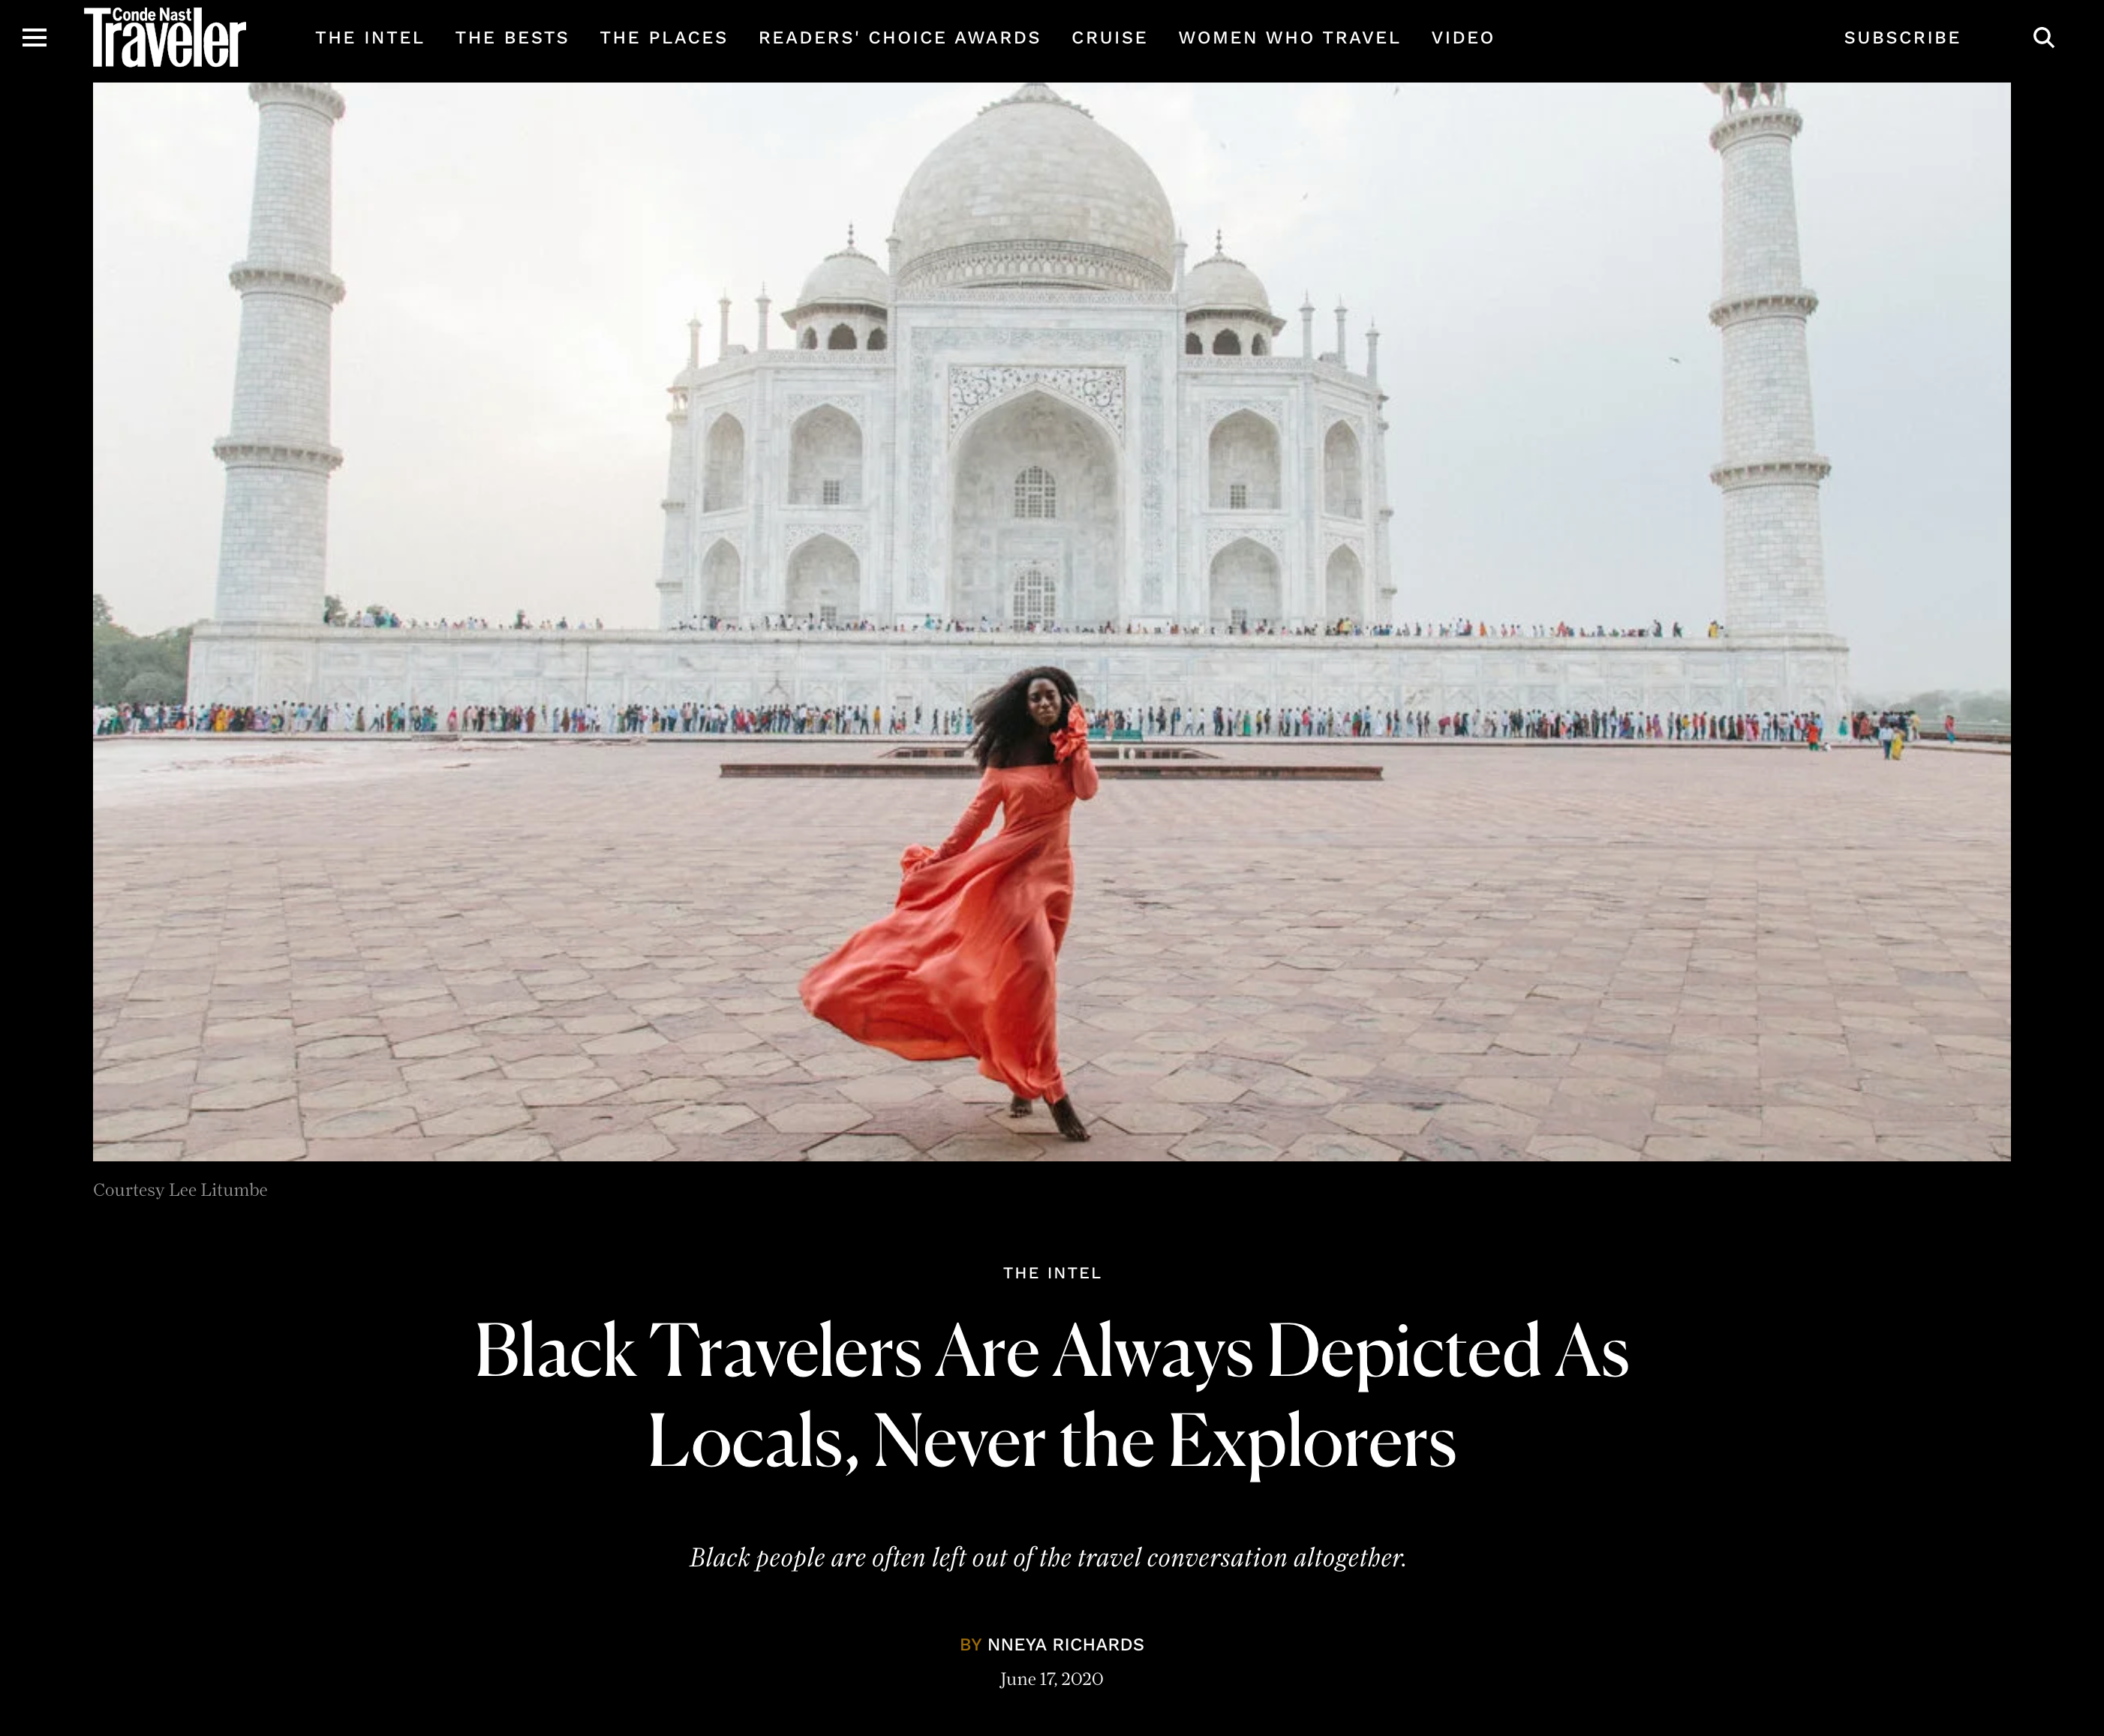 Cover of Conde NAst Traveler home page in front of the Taj Mahal